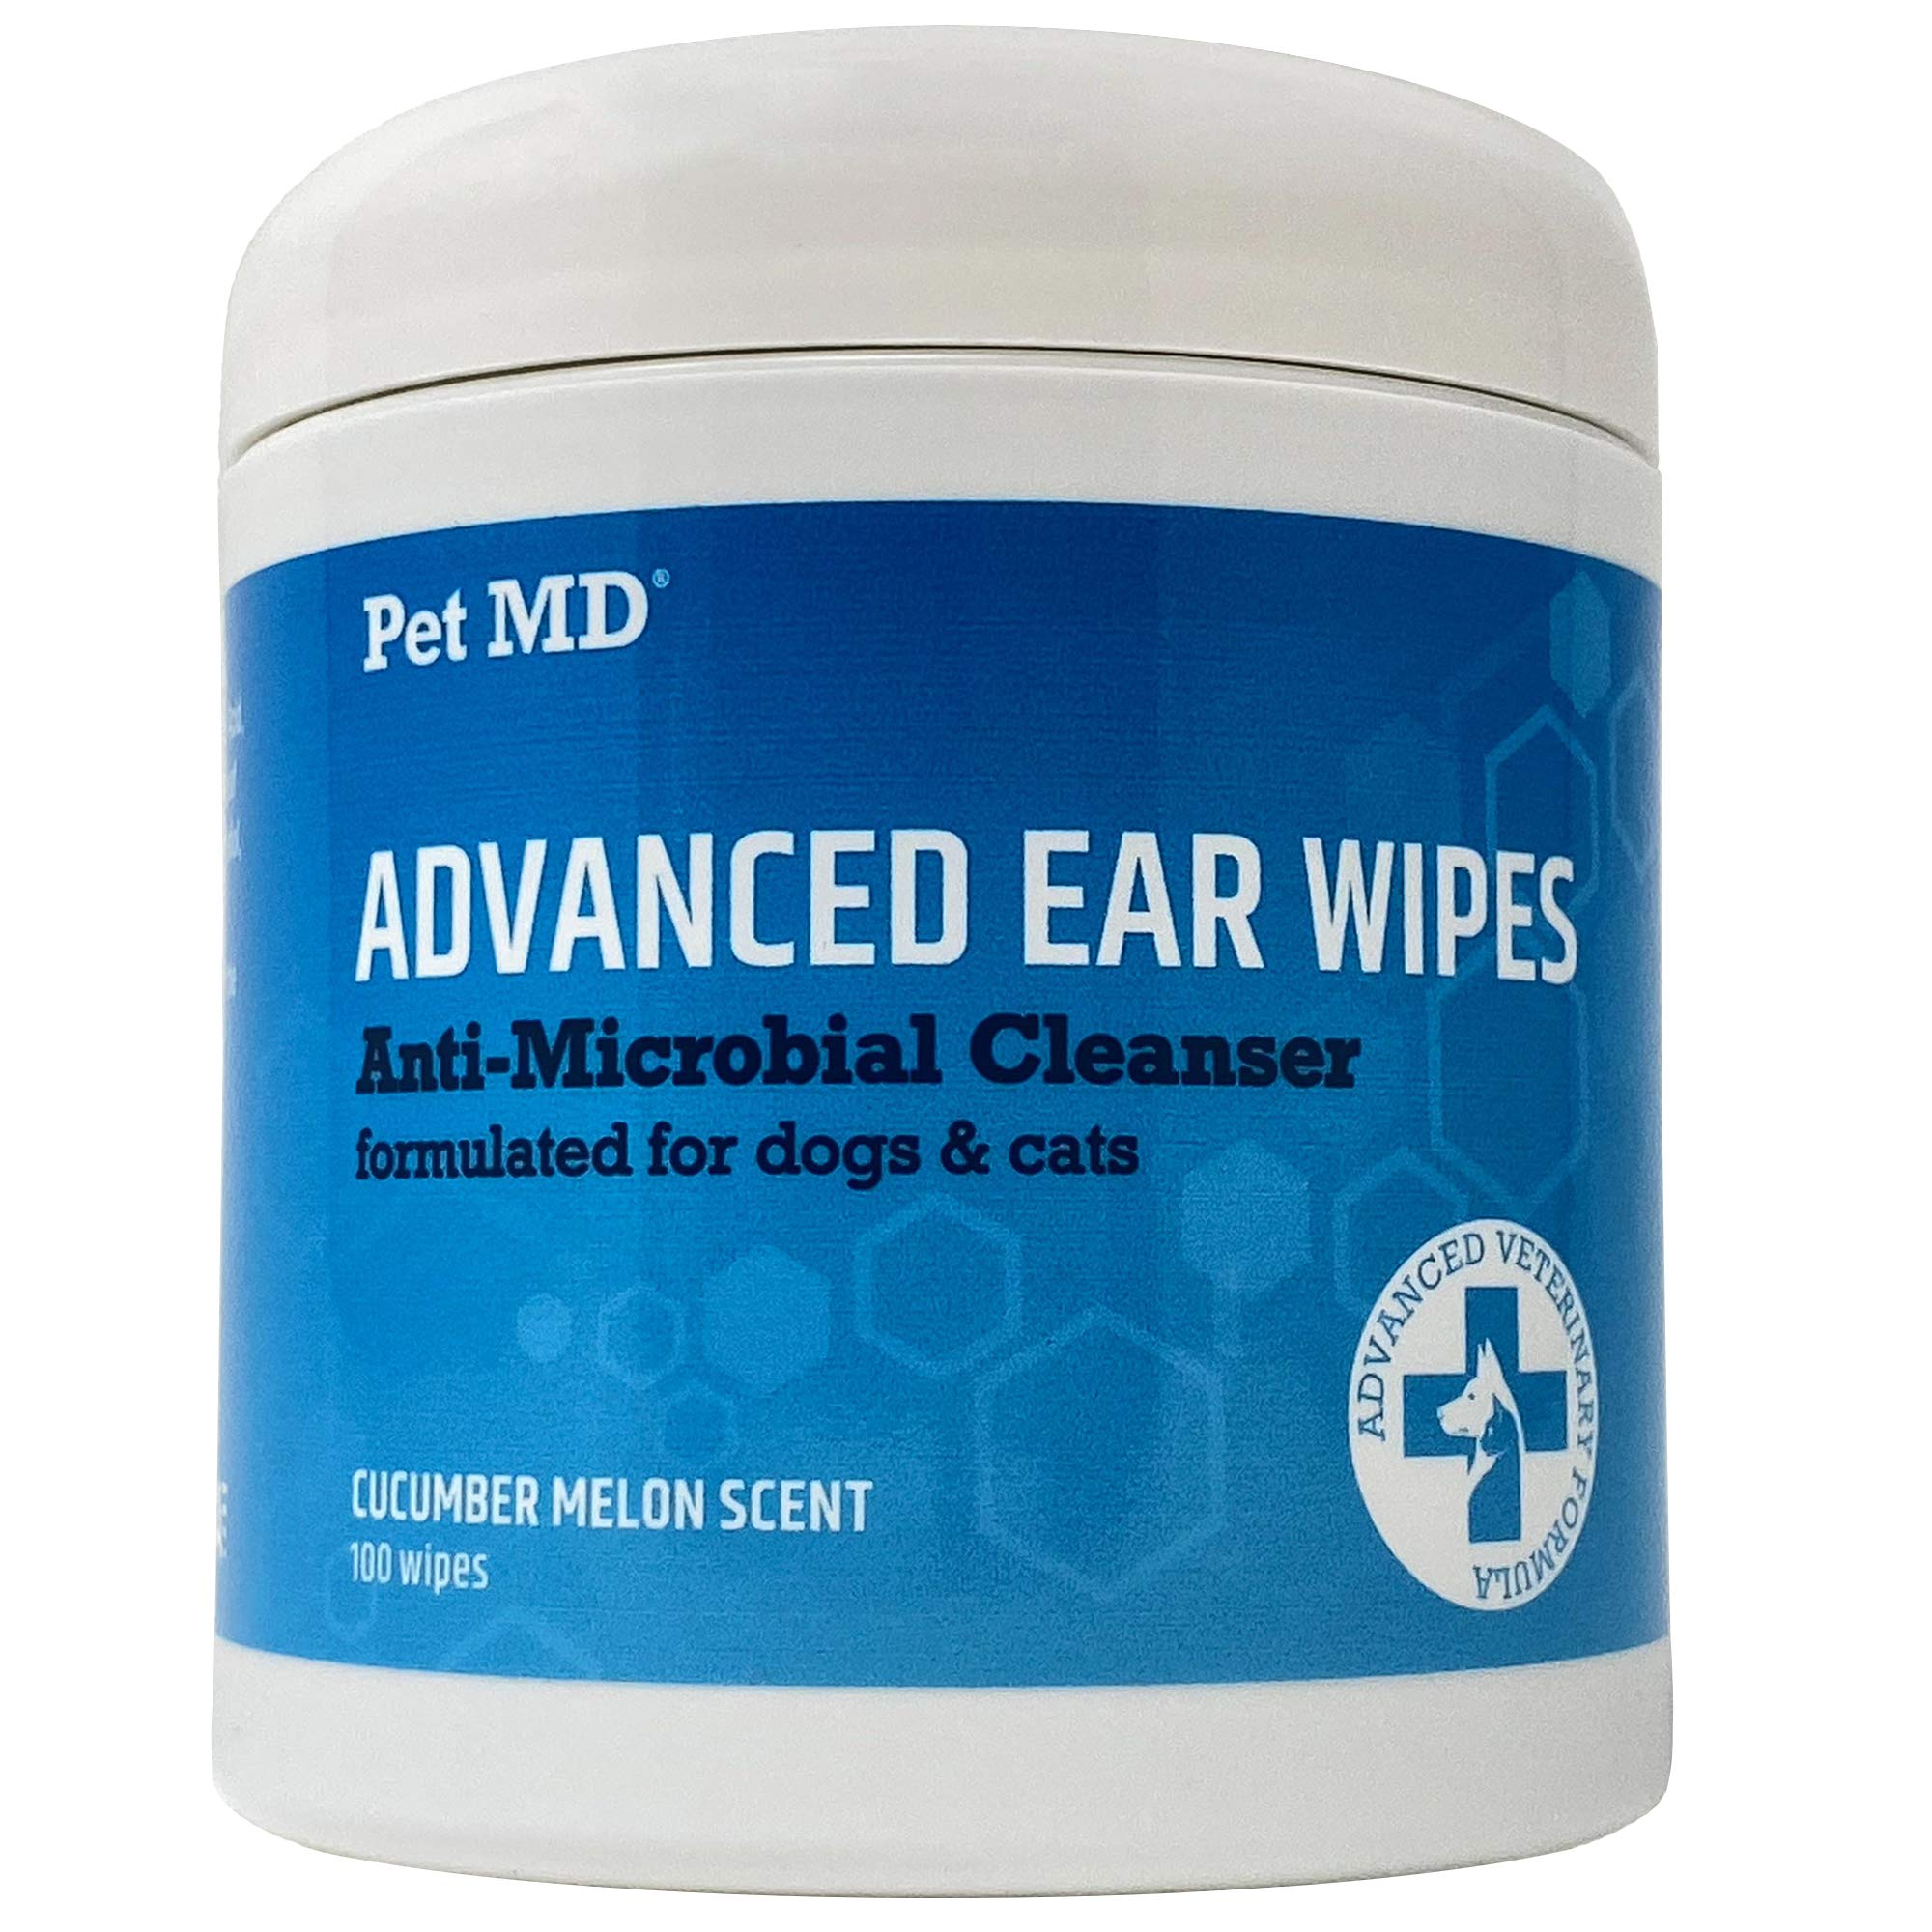 Pet MD Cat and Dog Ear Cleaner Wipes - Advanced Otic Veterinary Ear Cleaner Formula - Dog Ear Infection Treatment Eliminates Yeast and Bacteria - 100 Alcohol Free Ear Wipes with Soothing Aloe Vera by Pet MD